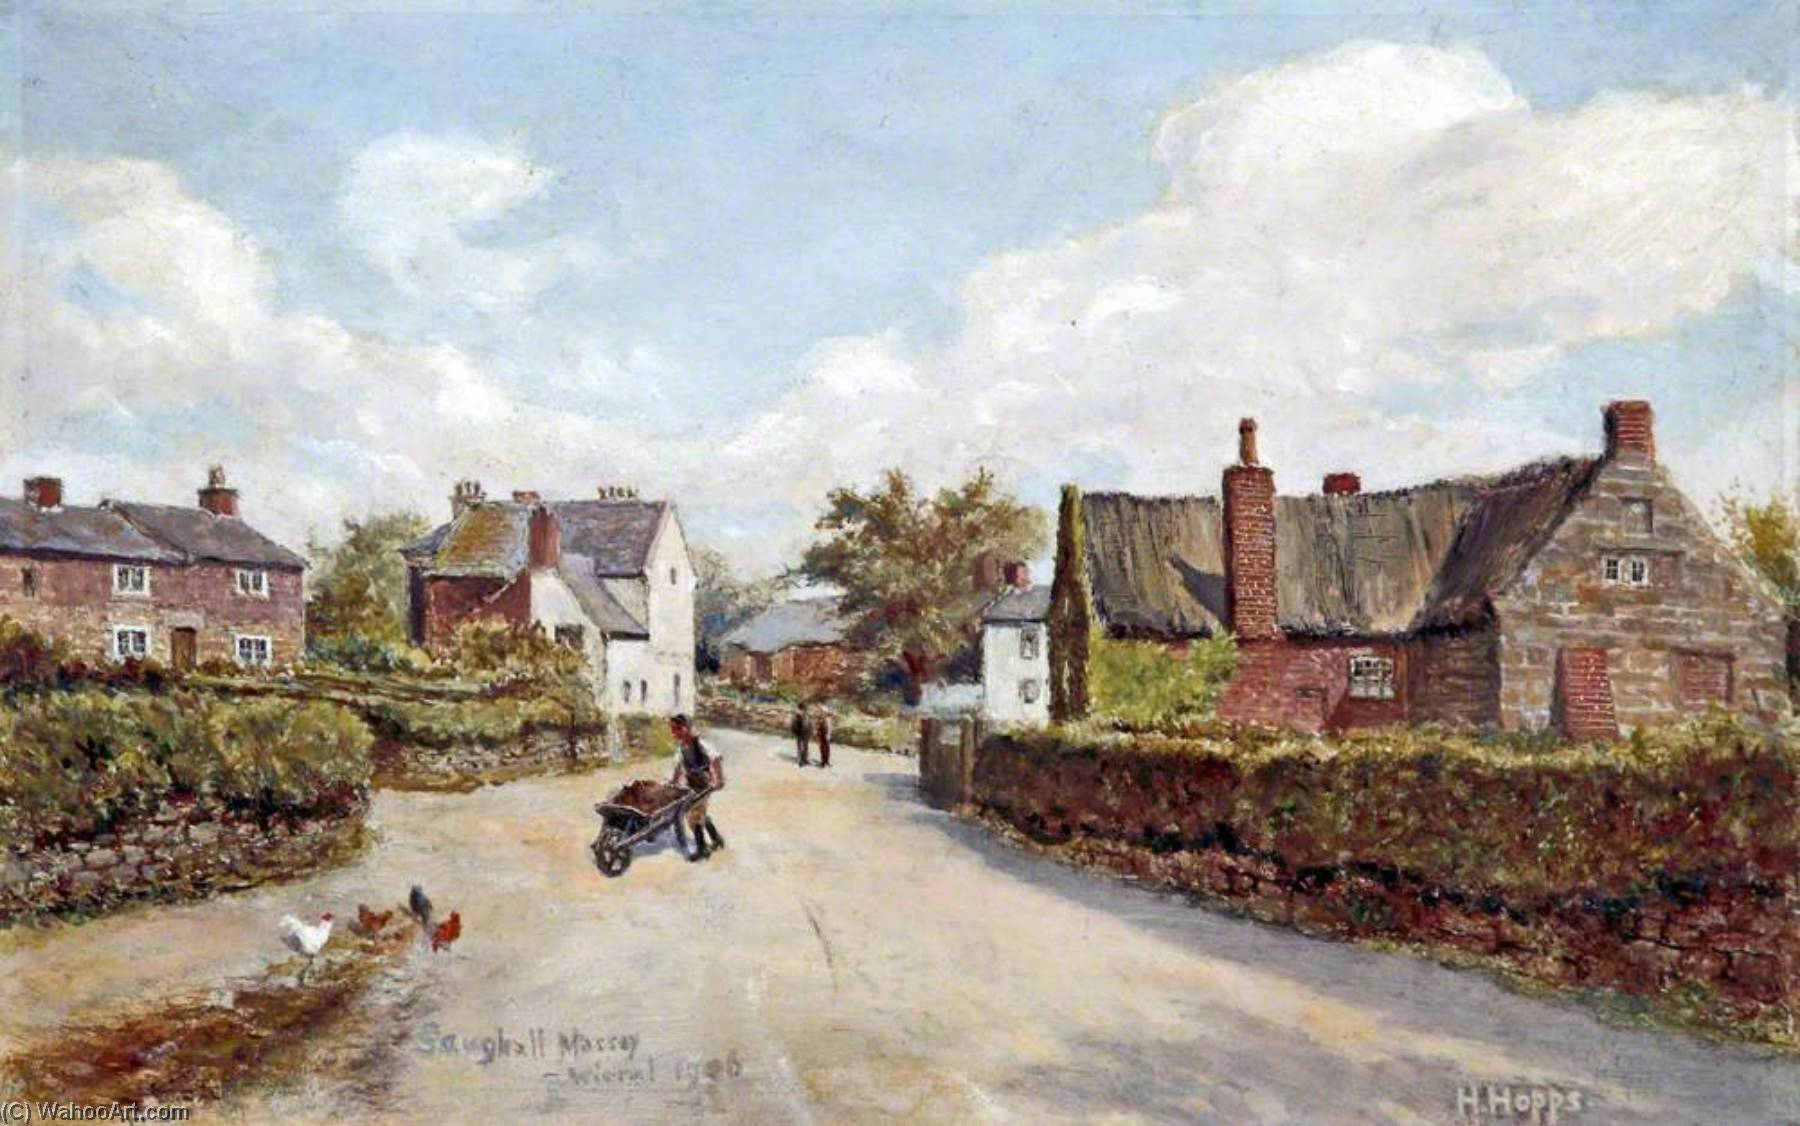 Saughall Massie, Wirral, 1906 by Harold Hopps | Famous Paintings Reproductions | WahooArt.com